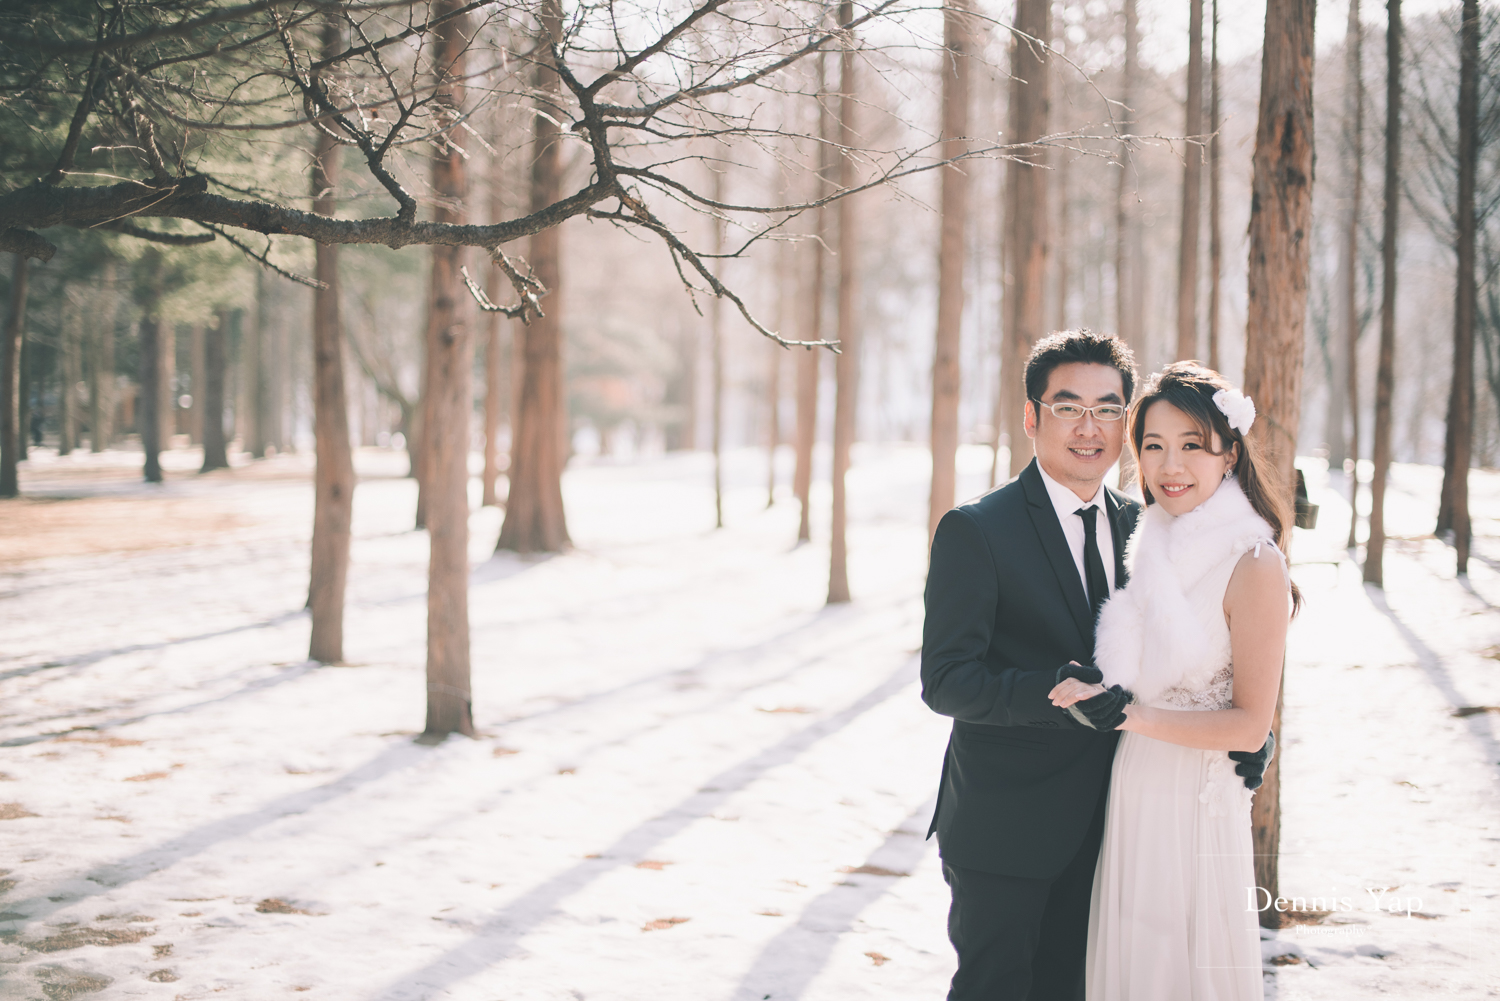 Colorful Wedding Winter Theme Picture Collection - The Wedding Ideas ...